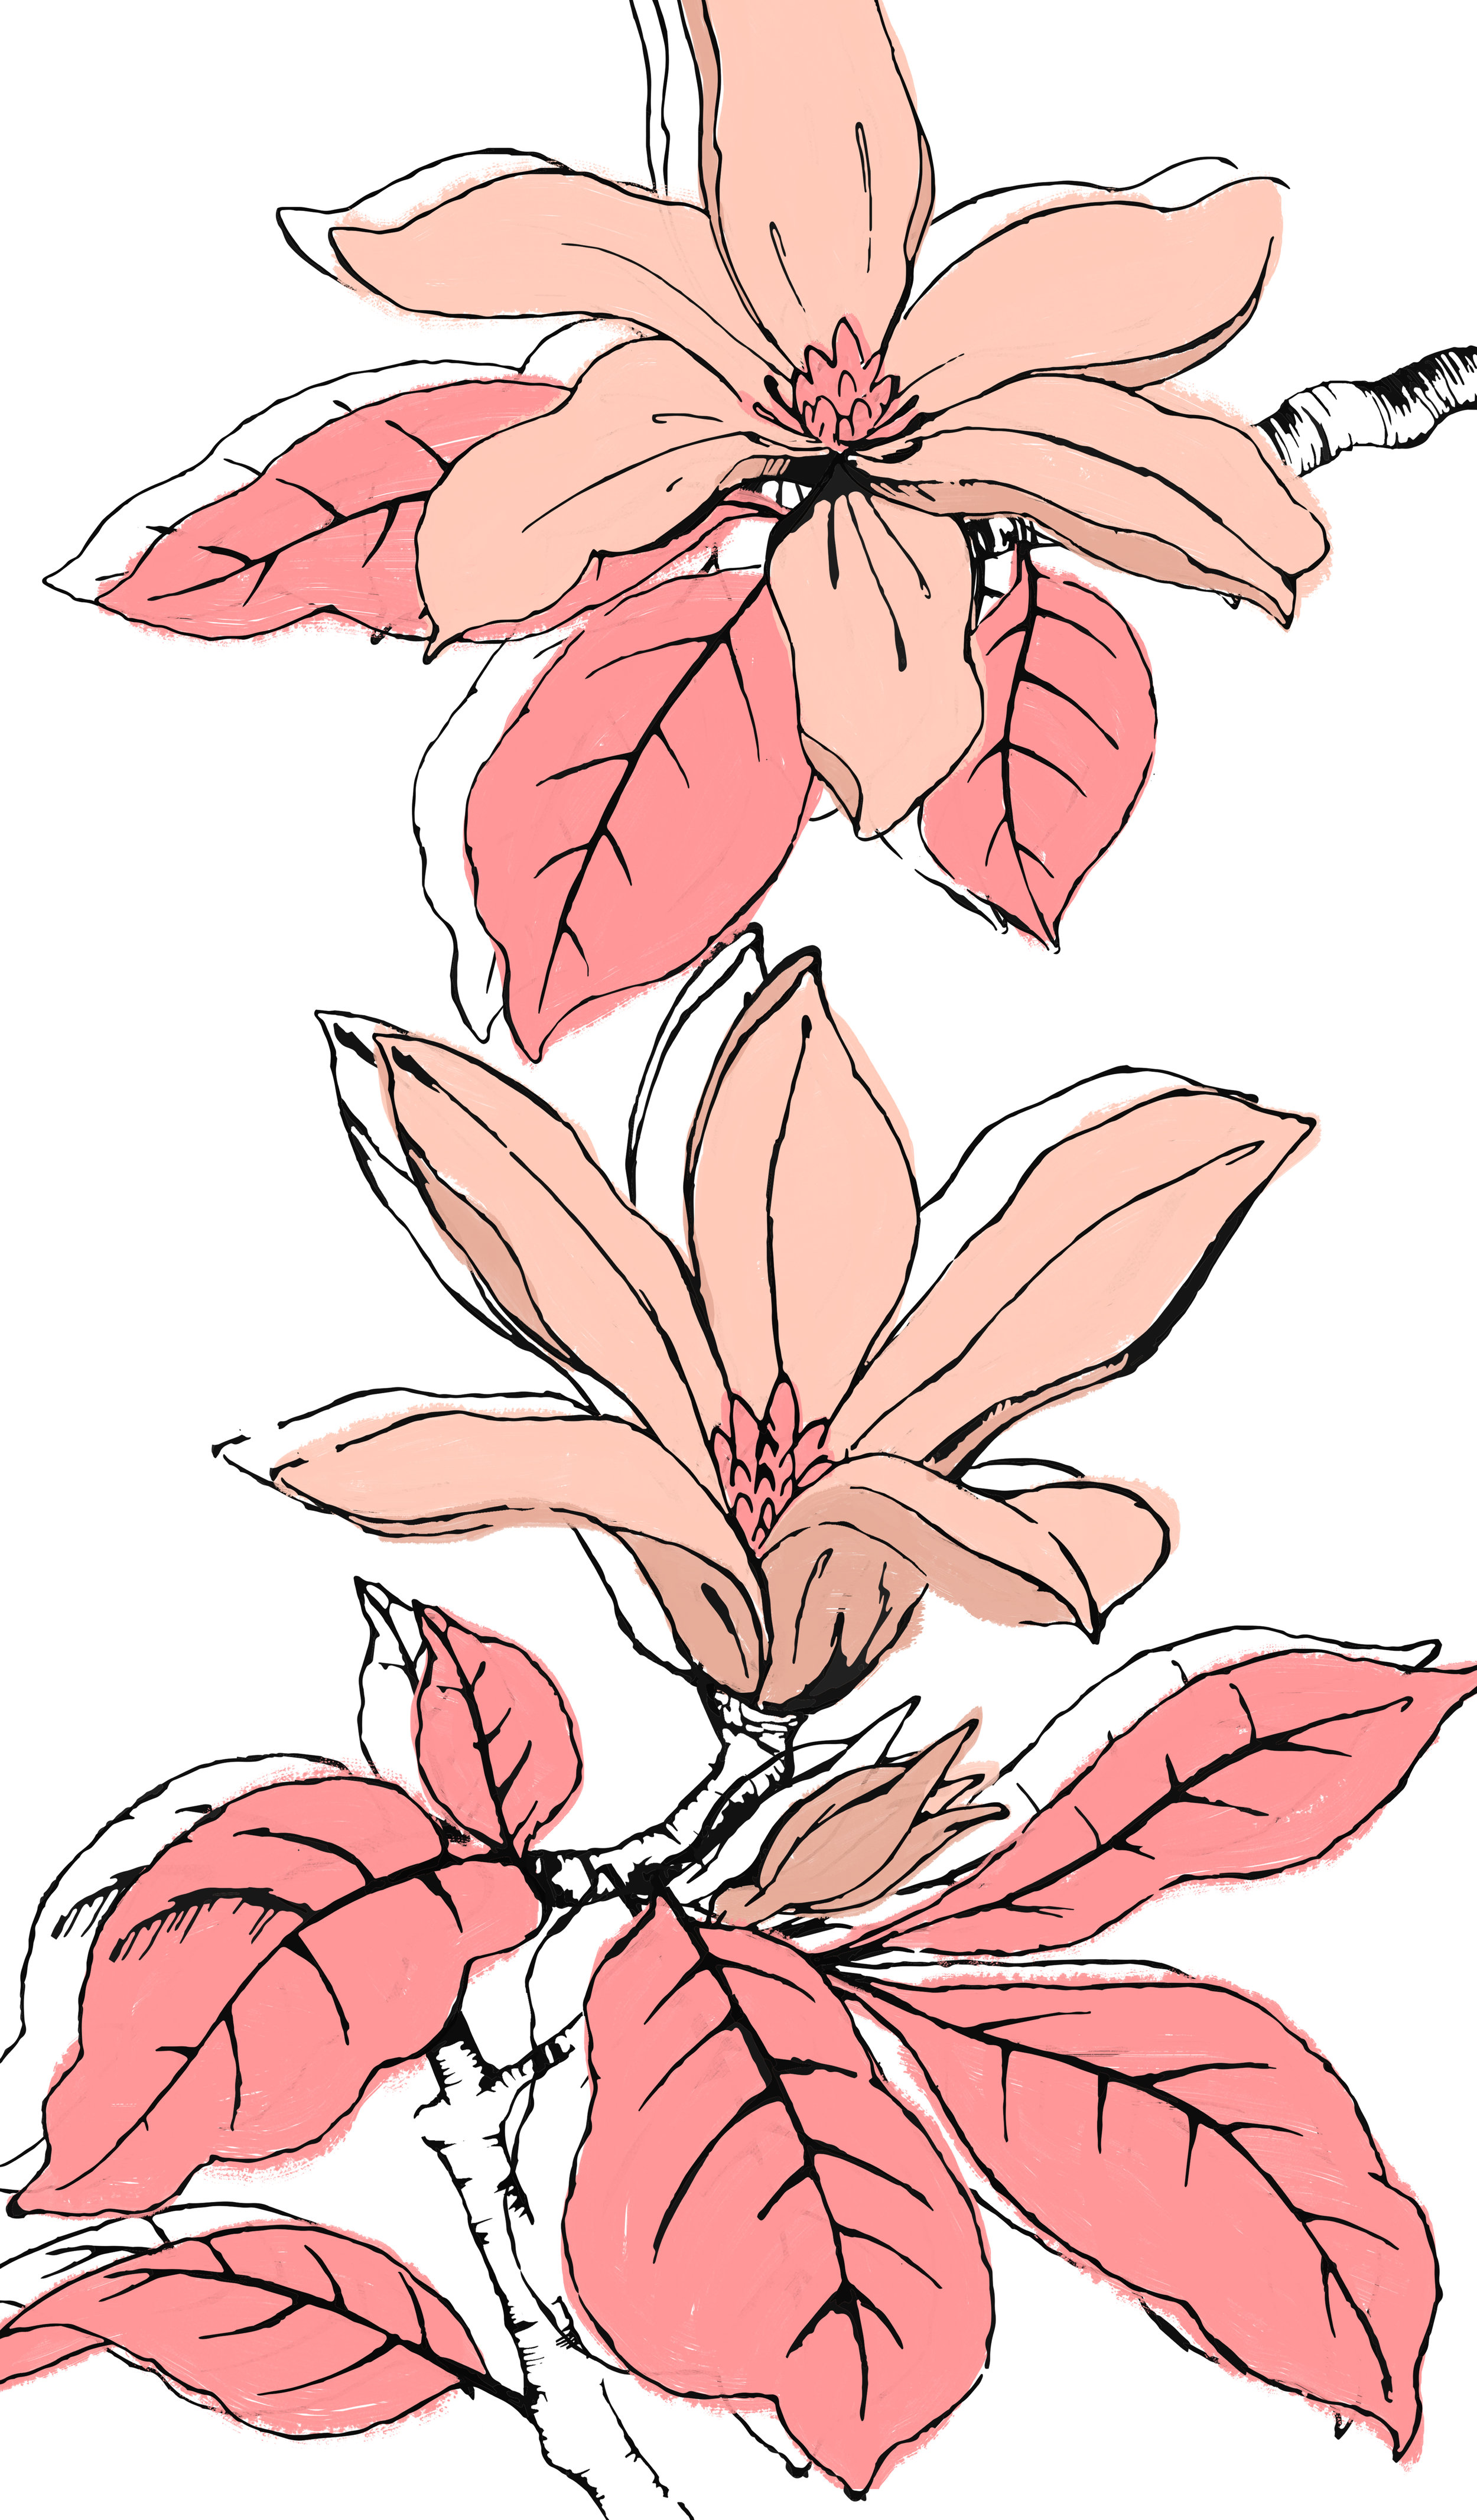 Large Scale Florals 1 - Lily.jpg